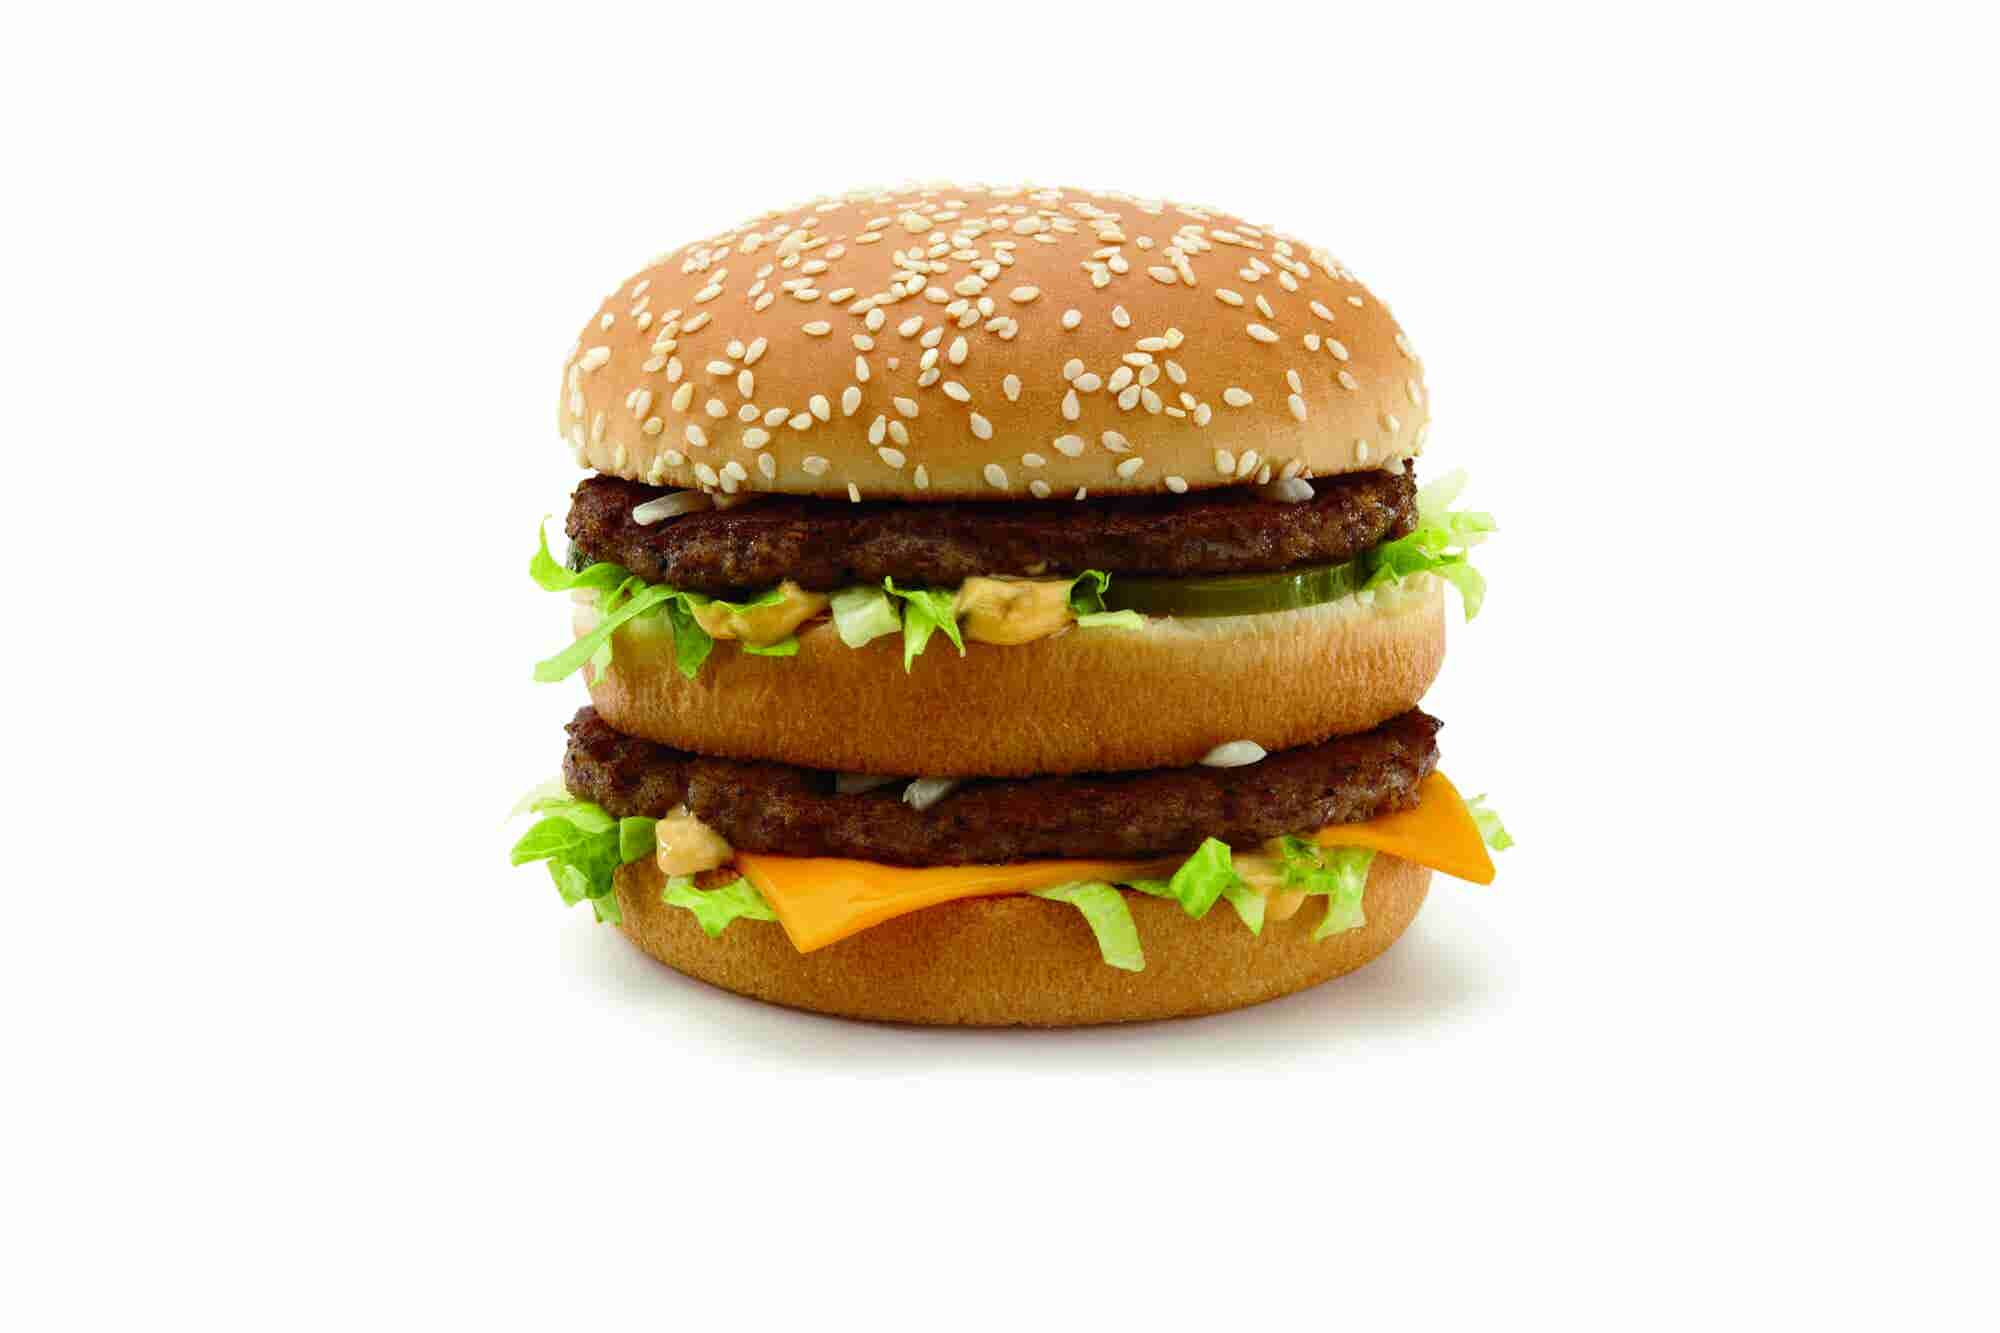 #1 on the Franchise 500: How McDonald's Evolved With Its Customer